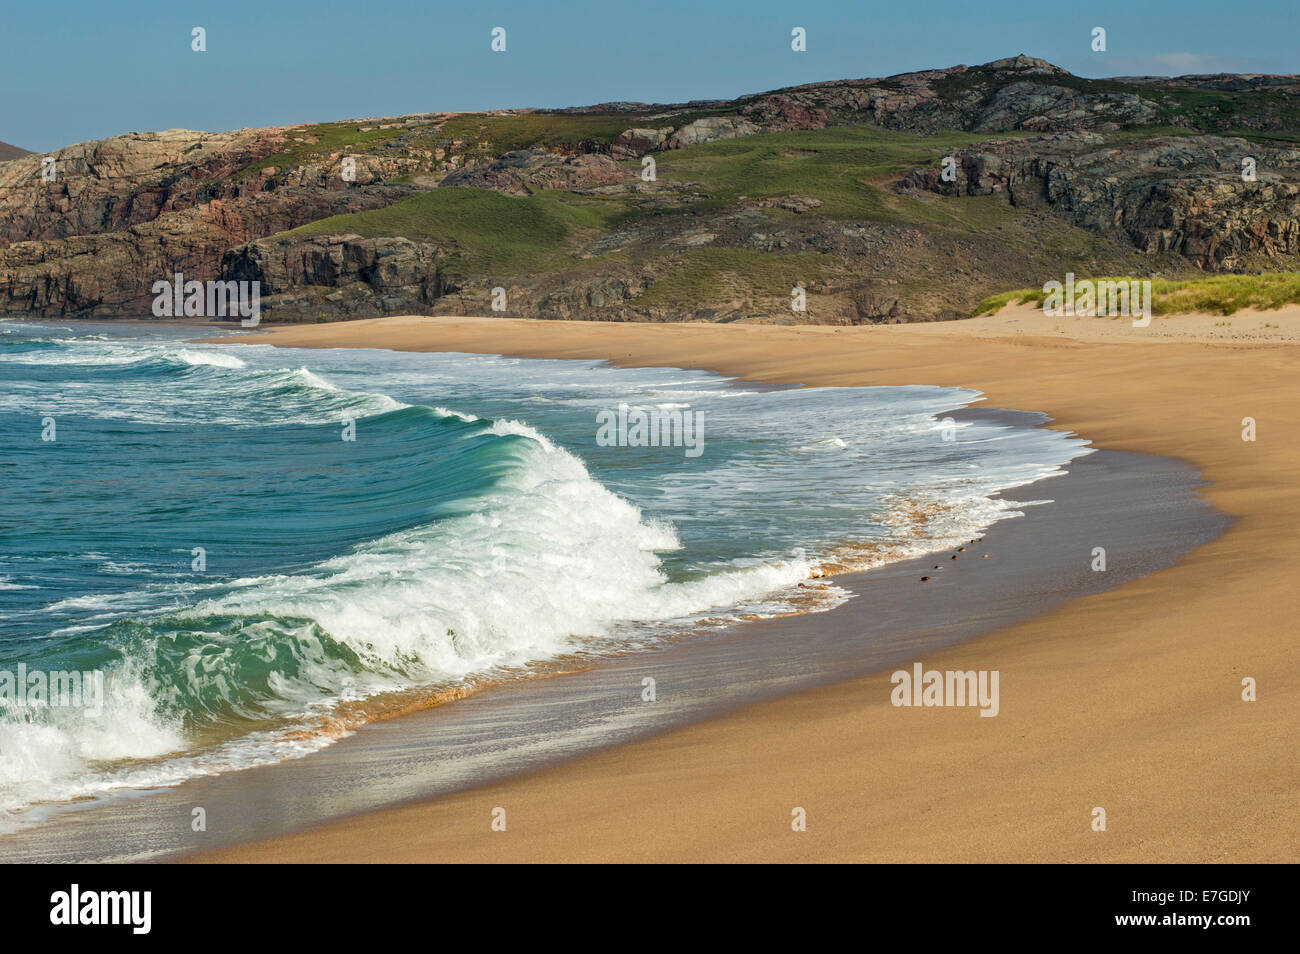 SANDWOOD BAY SUTHERLAND SCOTLAND HUGE WAVES BREAKING OVER THE SAND BEACH - Stock Image